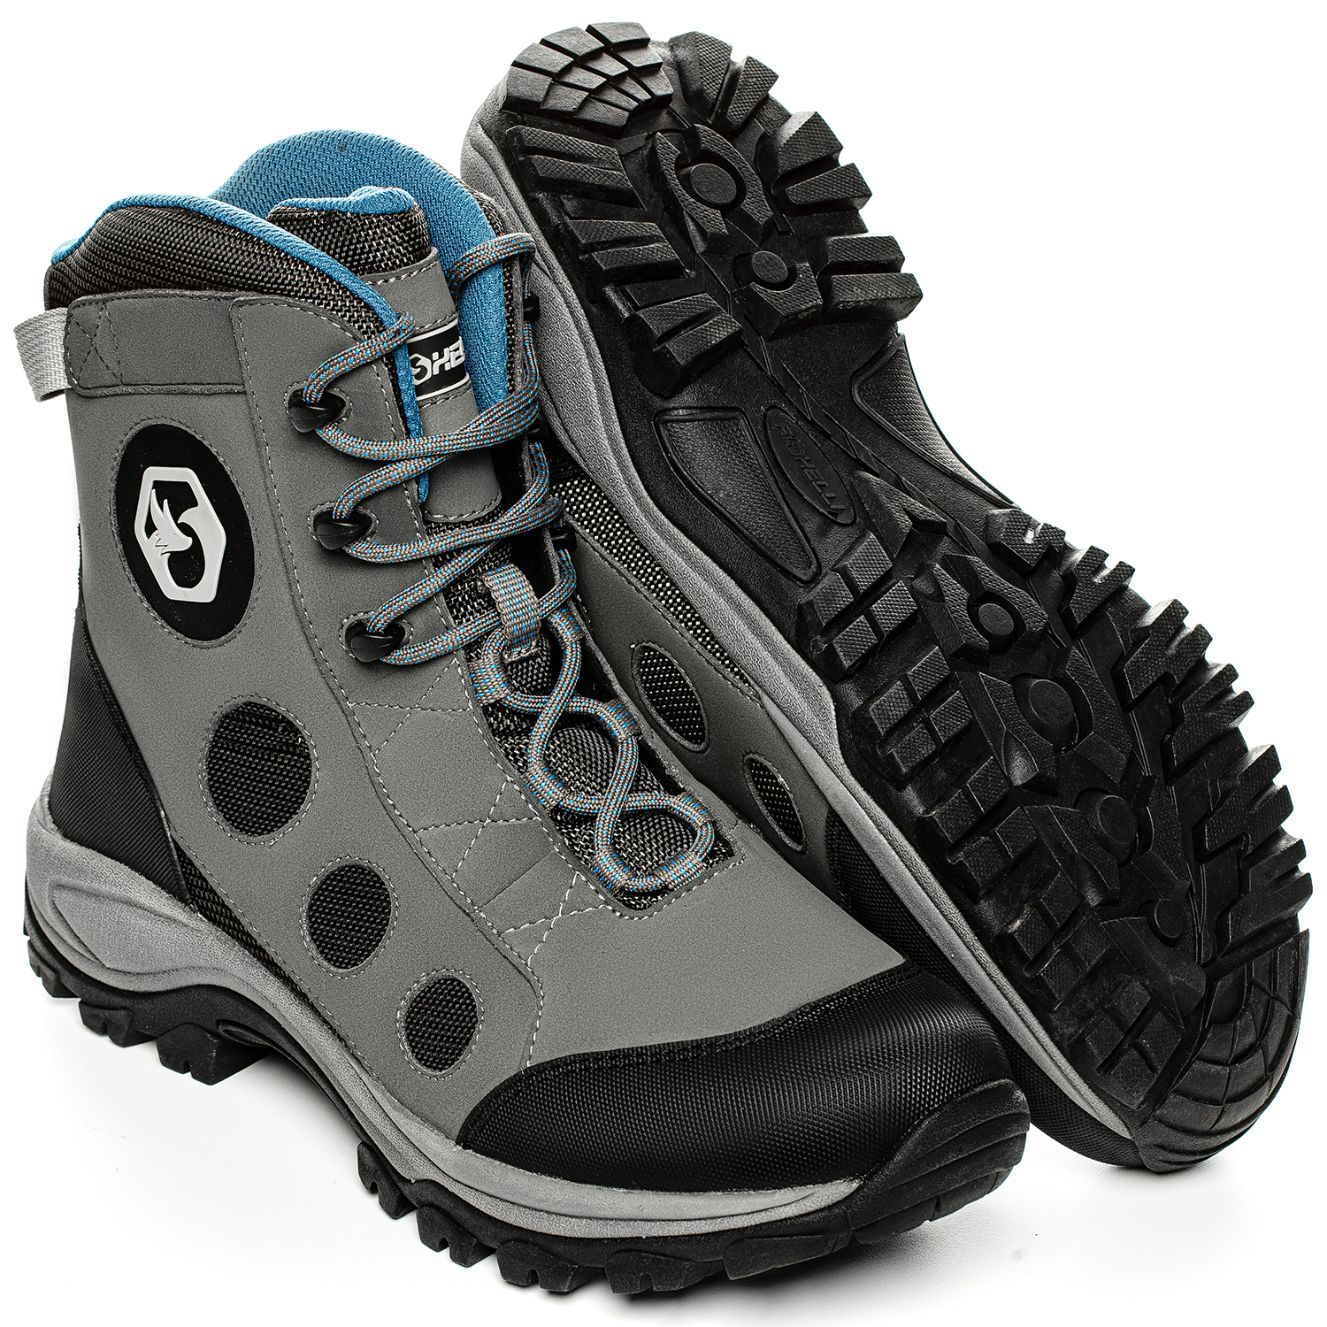 Foxelli Rock Fishing Shoes- Best Lightweight Wading Boots for Hiking